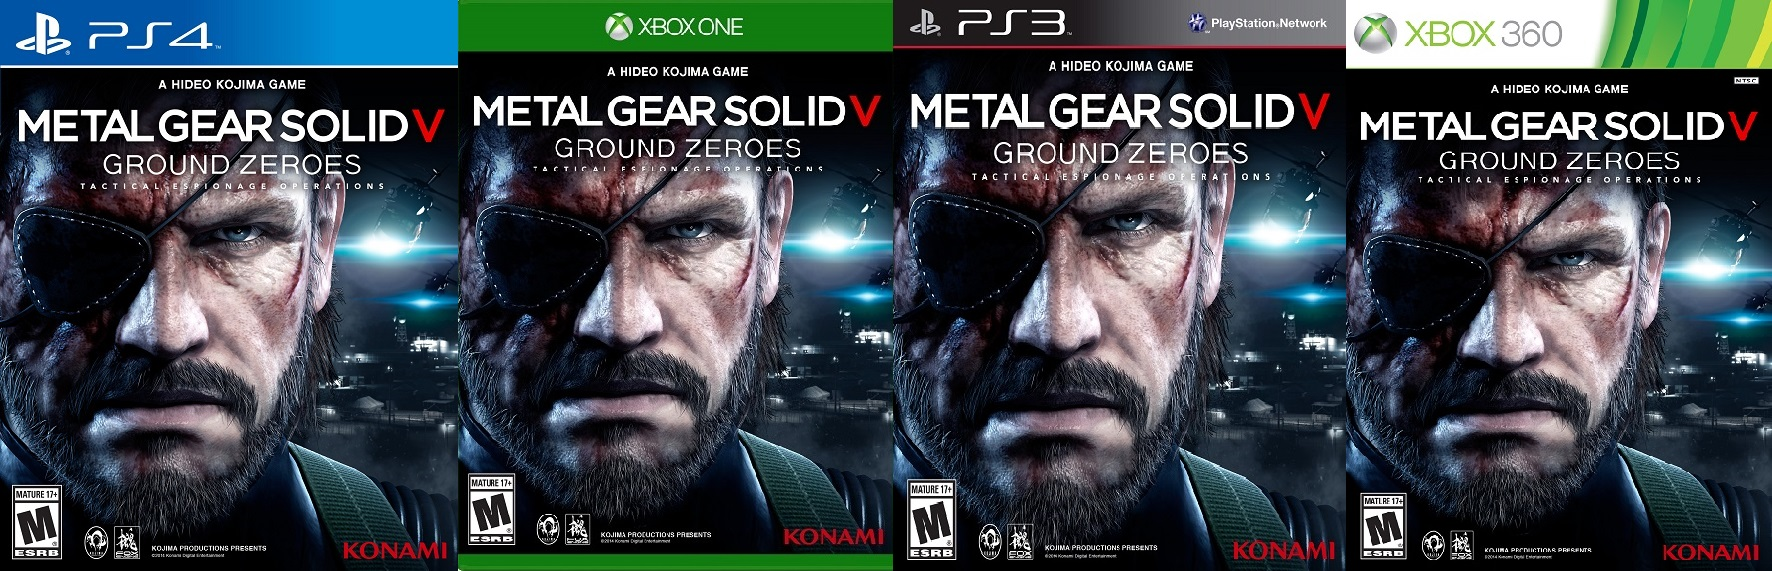 MGS_V_Ground_Zeroes_-_Covers_1_.jpg